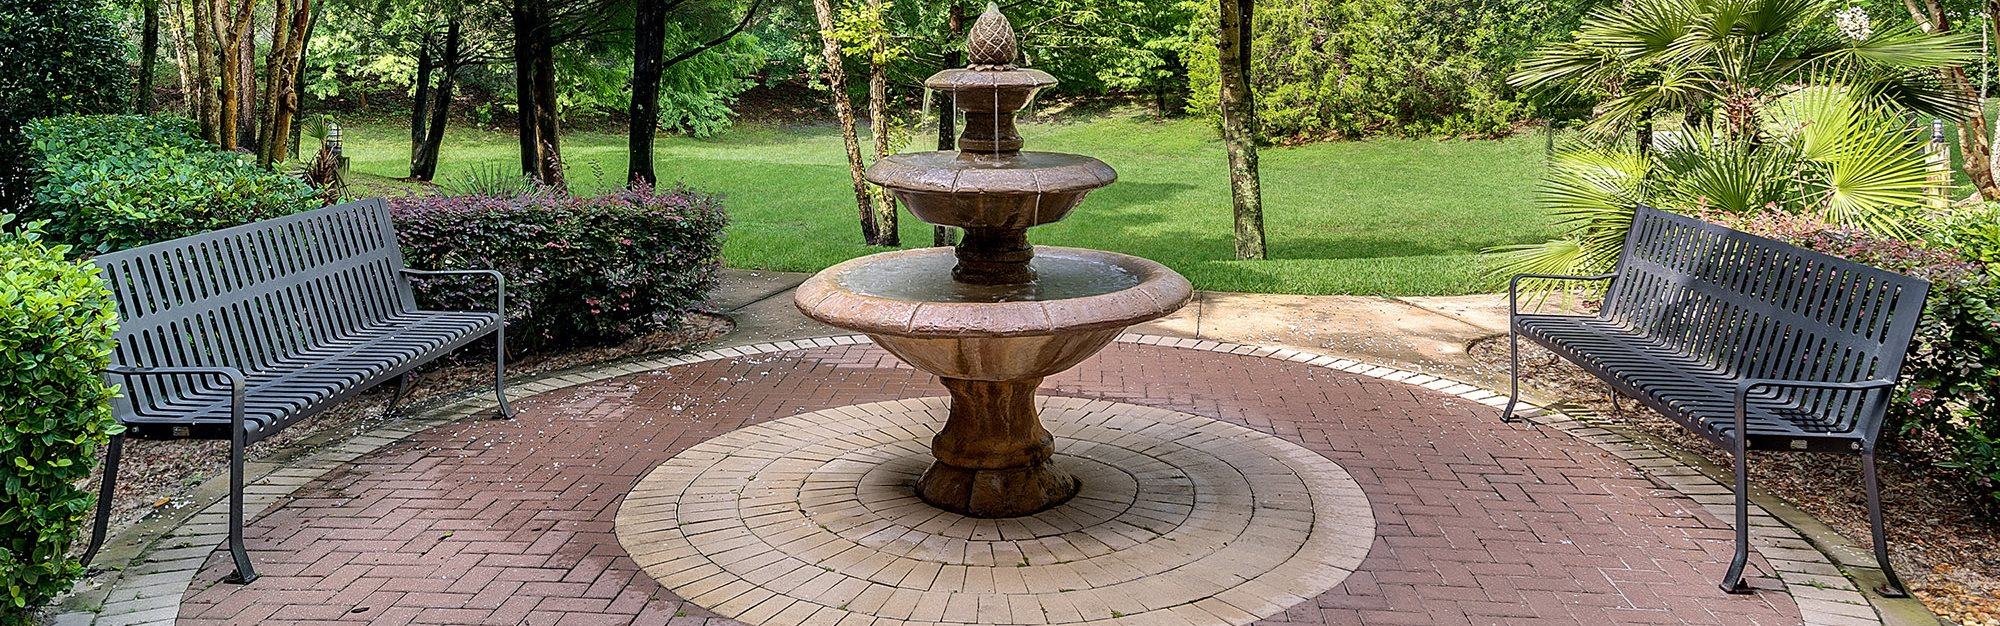 Rolling Acres Apartments for rent in Tampa, FL. Make this community your new home or visit other Concord Rents communities at ConcordRents.com. Outdoor sitting area with fountain